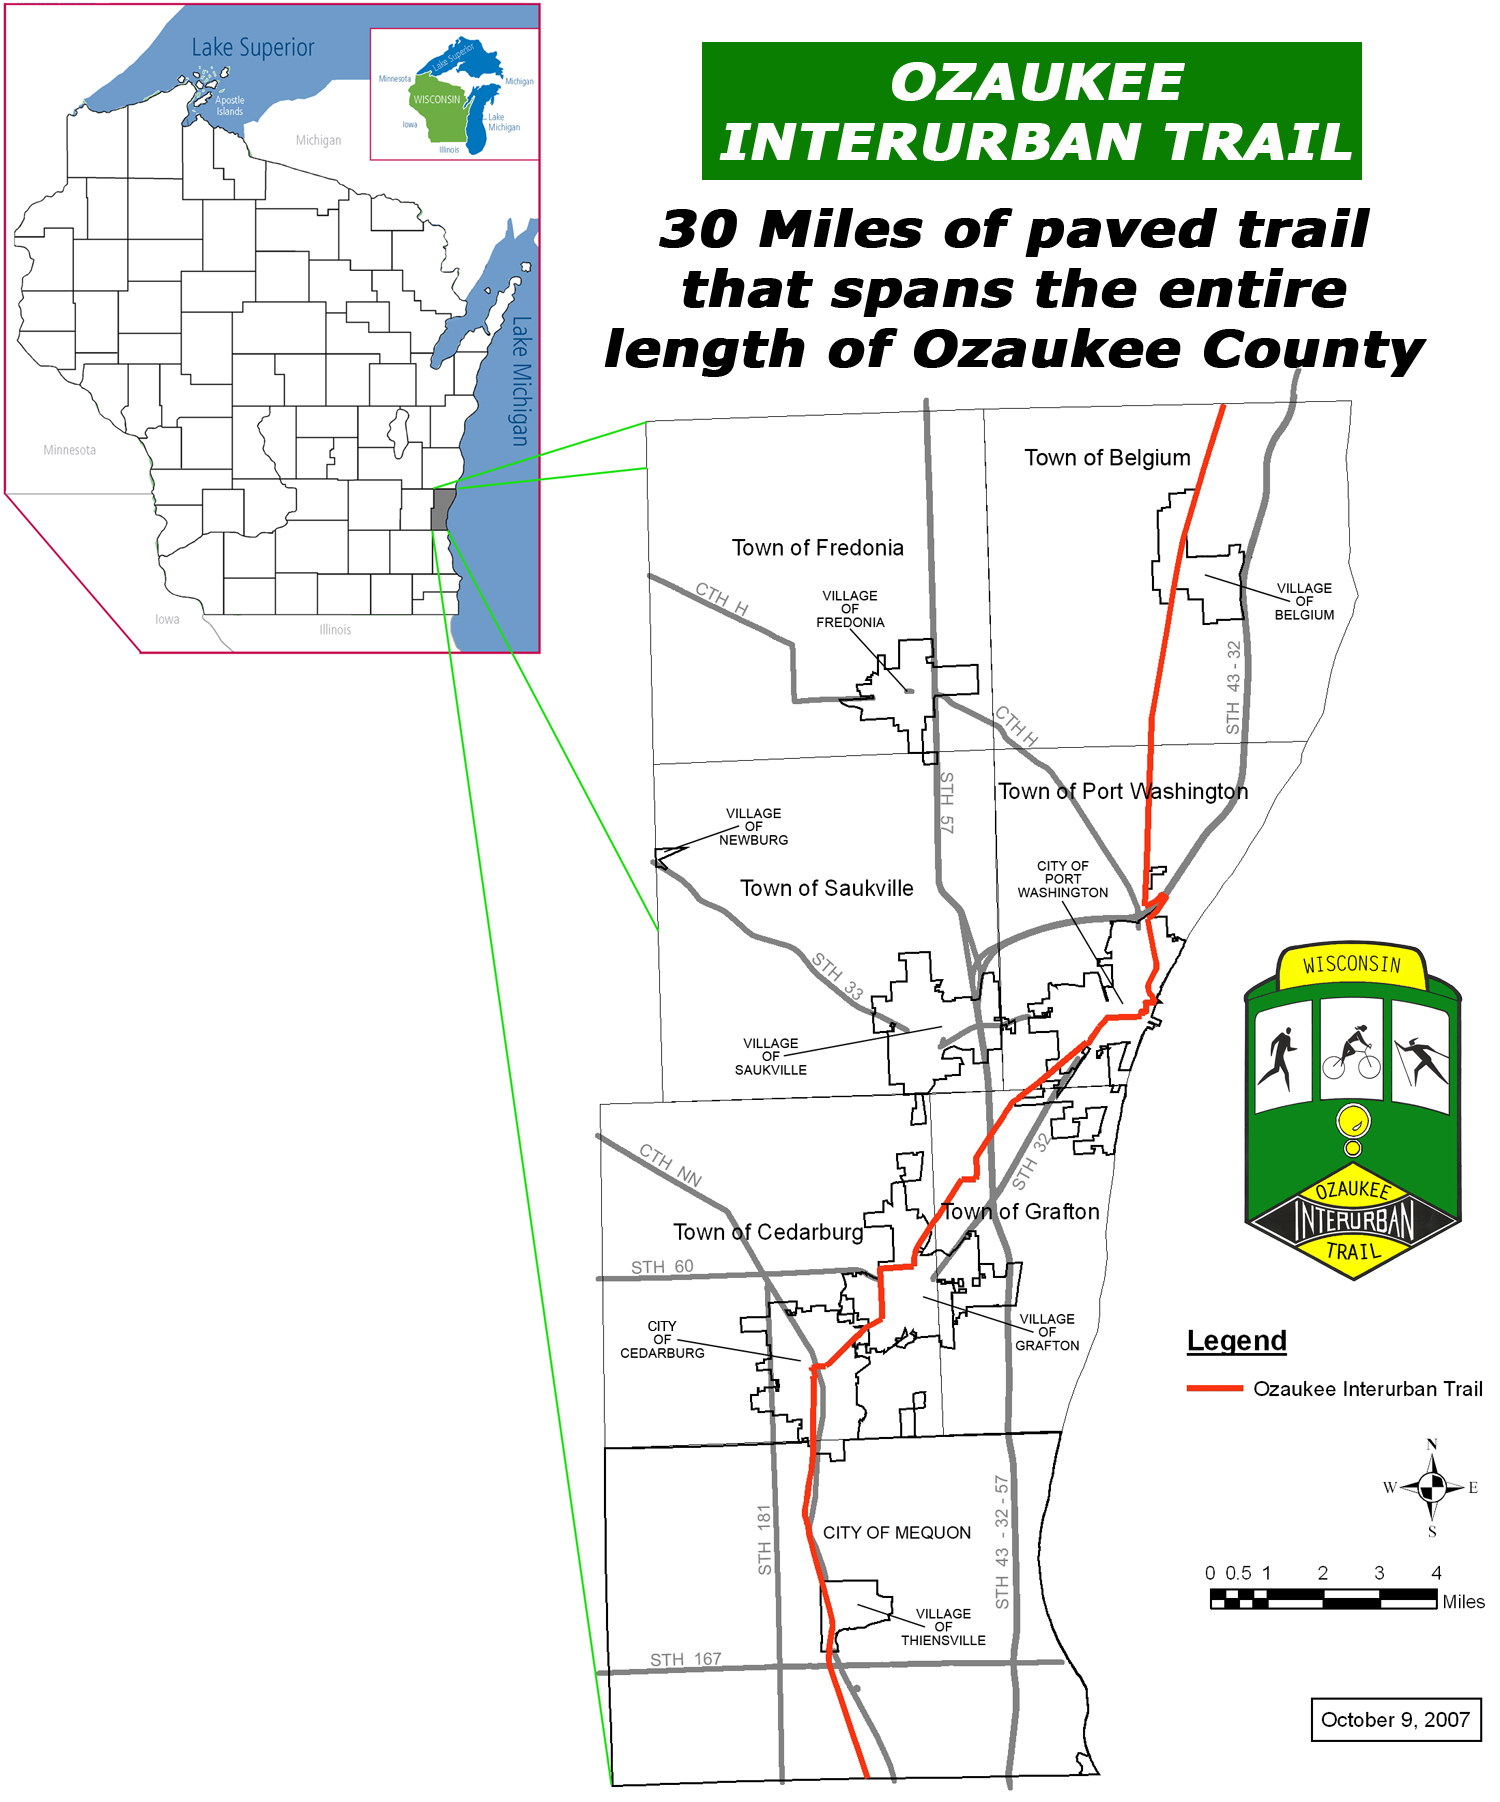 Interurban Trail | Ozaukee County, WI - Official Website on map of shorewood, map of greendale, map of wausau, map of menomonee falls, map of lake geneva, map of superior, map of pewaukee, map of elm grove, map of belgium, map of mukwonago, map of fox point, map of eau claire,